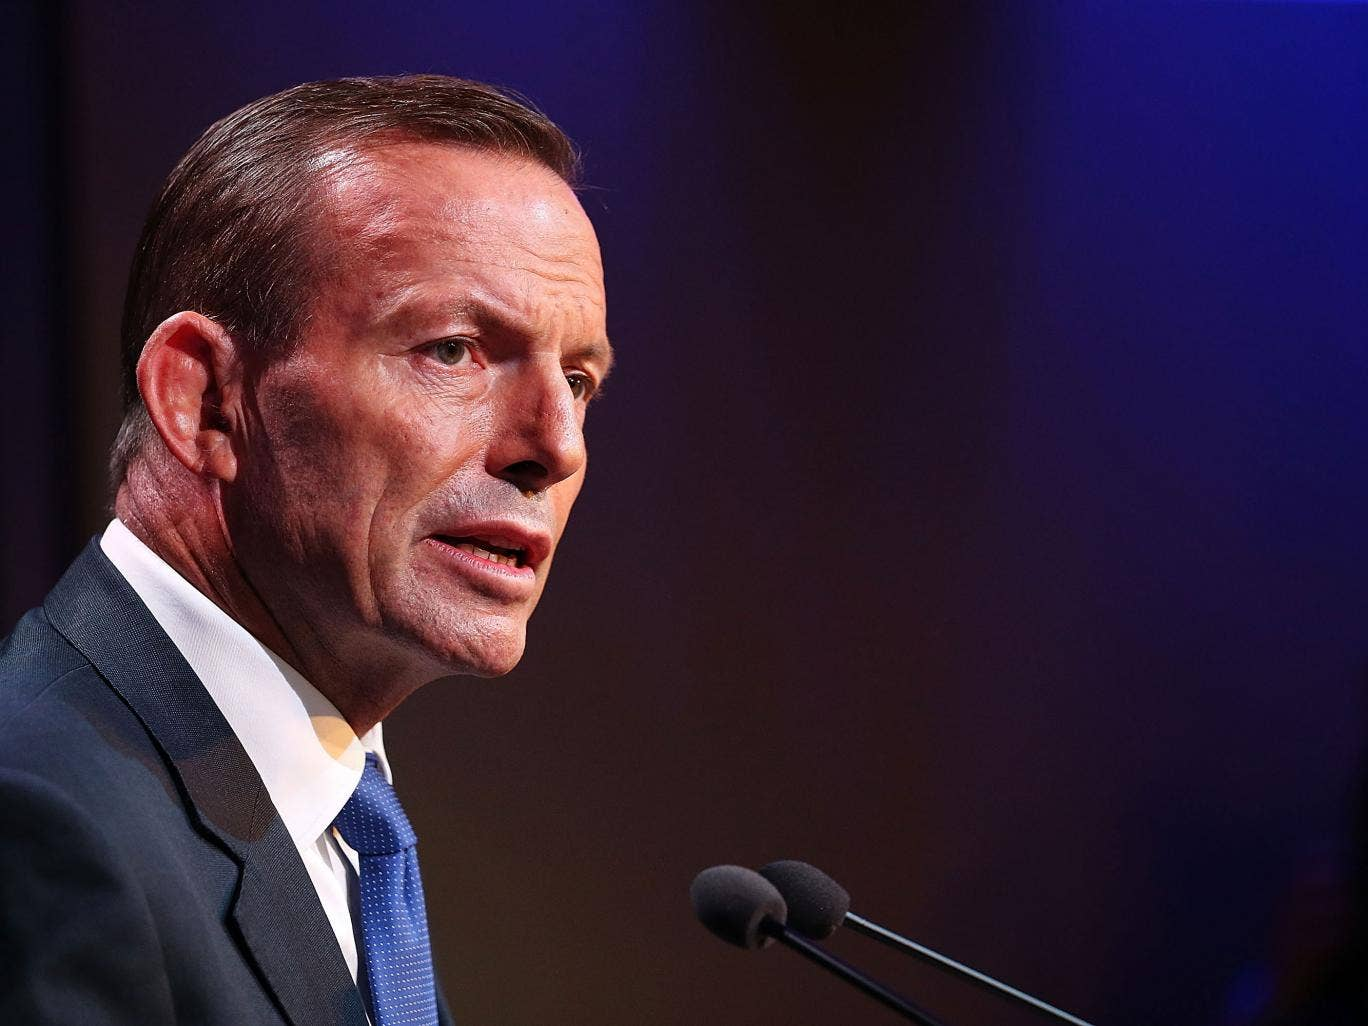 australian prime minister gay marriage essay Australia prime minister 'not australia gay marriage 2017 about after australia australia's australian being better climate could crisis essay explainer.